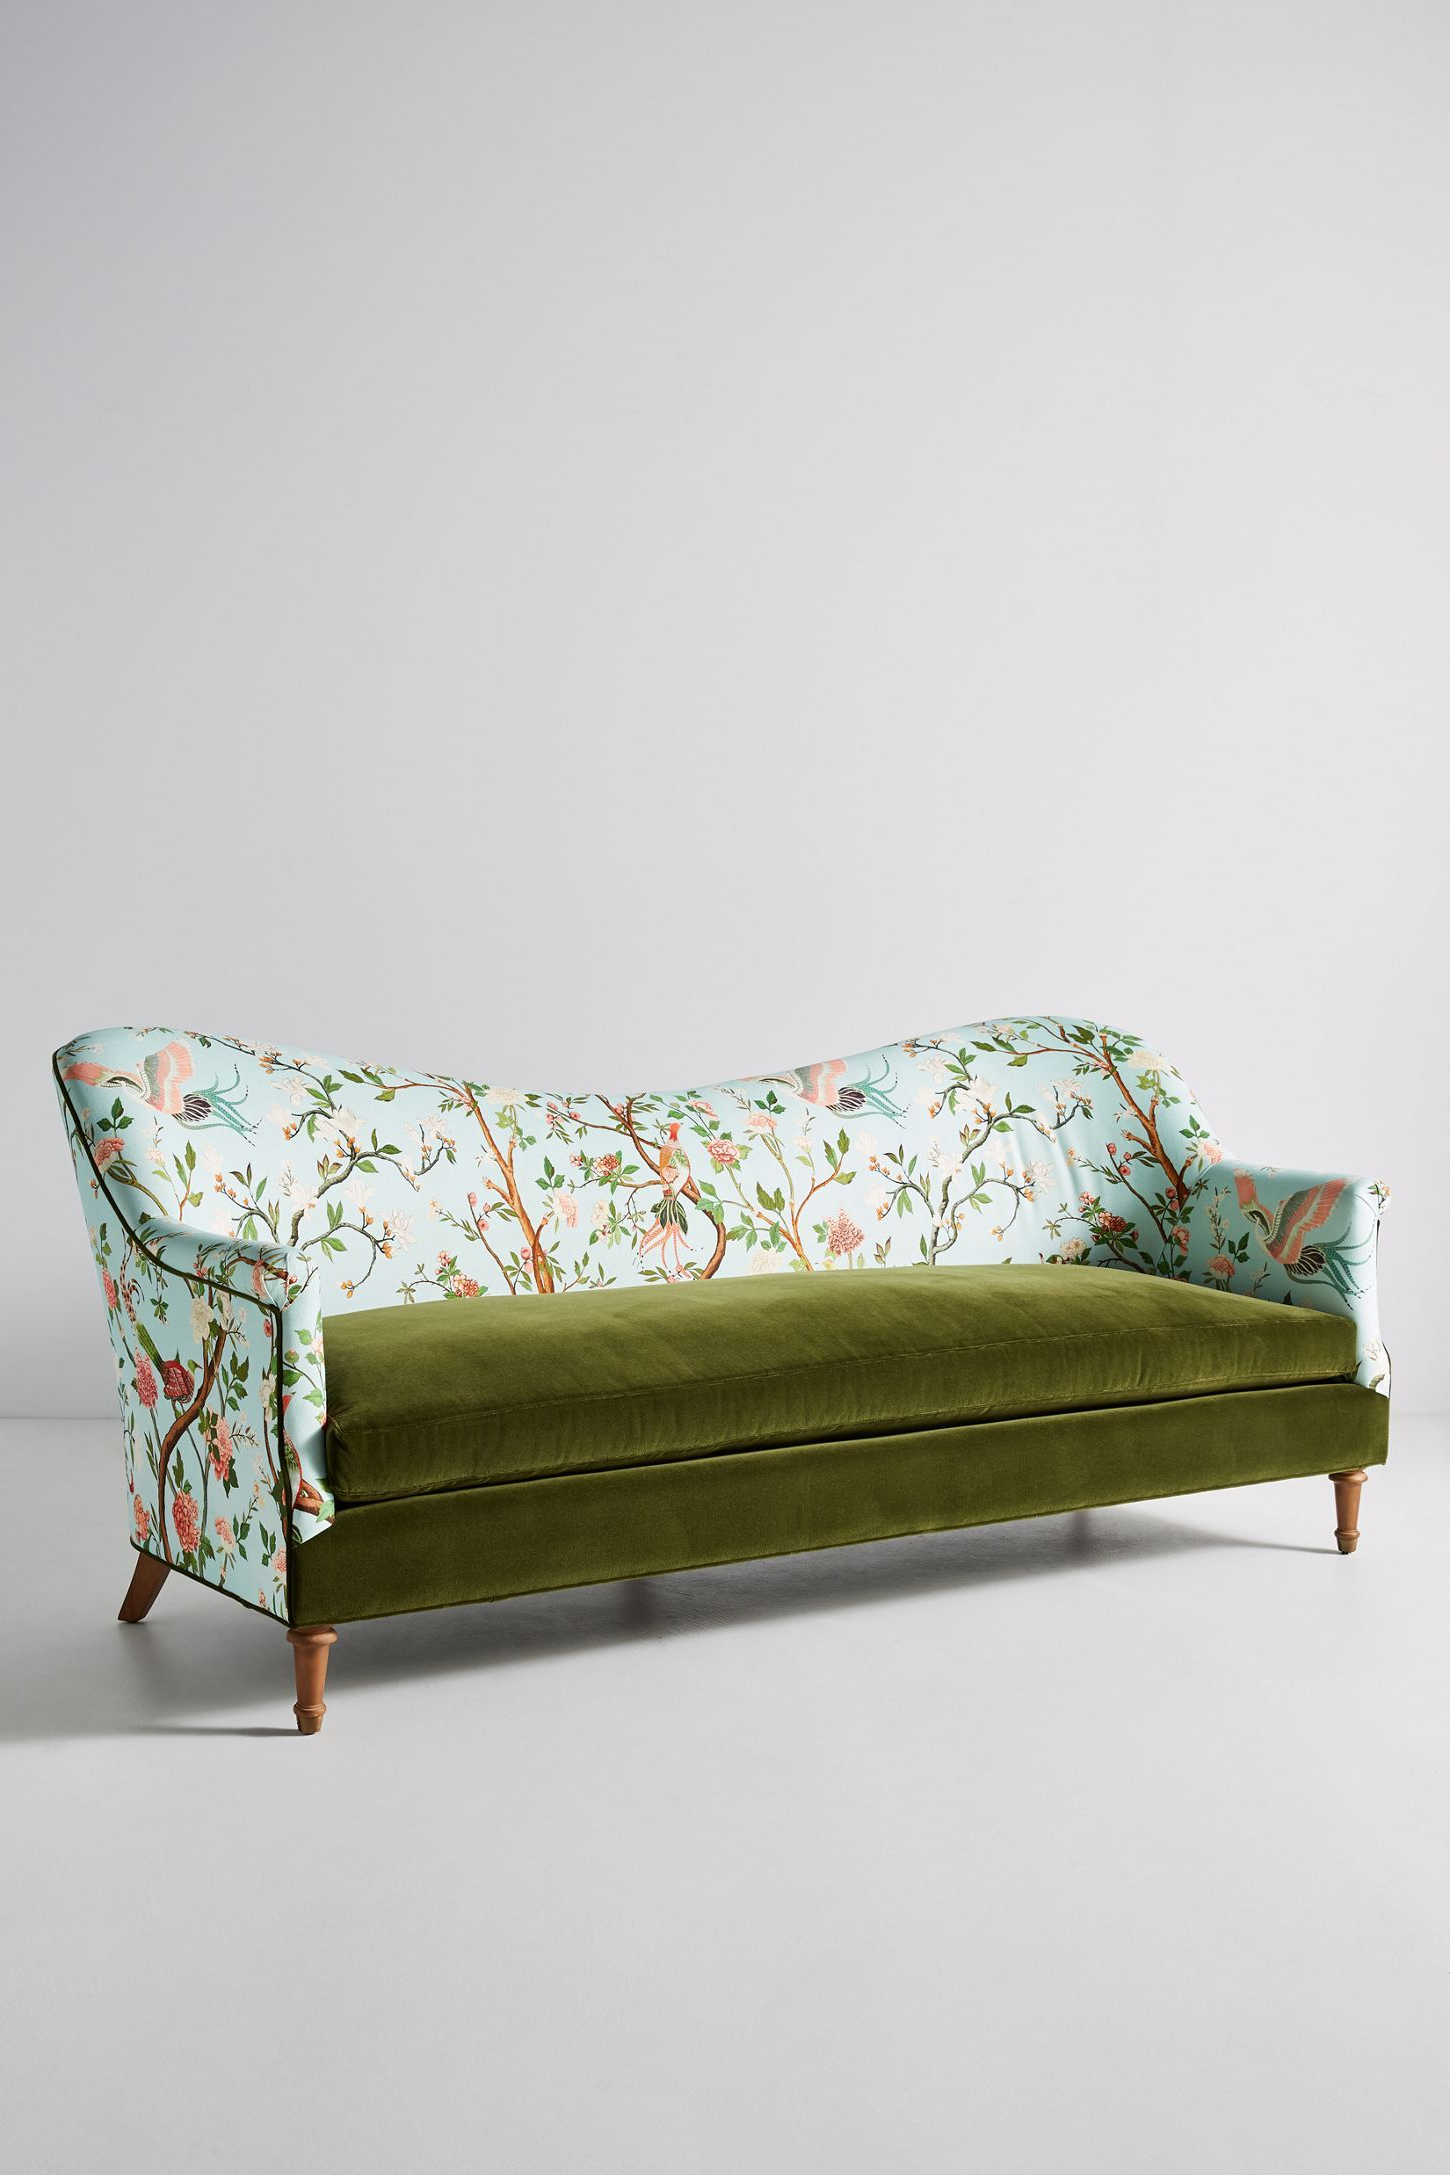 Allie Jade Sofa Chairs With Regard To Most Recently Released Pied A Terre Sofa, Valerie In 2019 (Gallery 14 of 20)